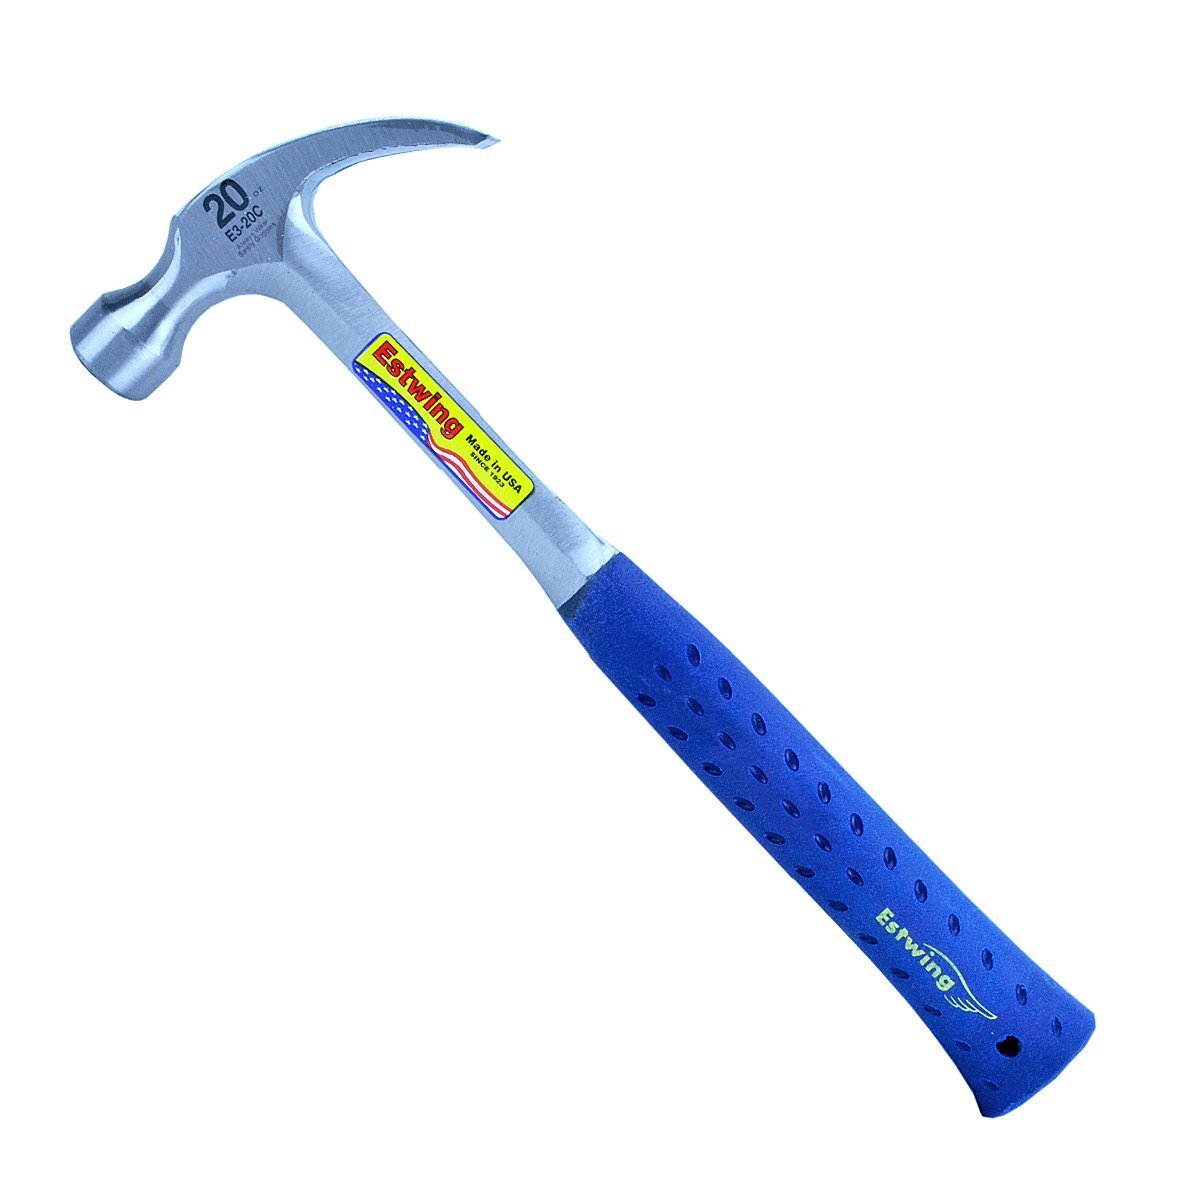 ESTWING E3-20C 20OZ CLAW HAMMER WITH VINYL GRIP HANDLE